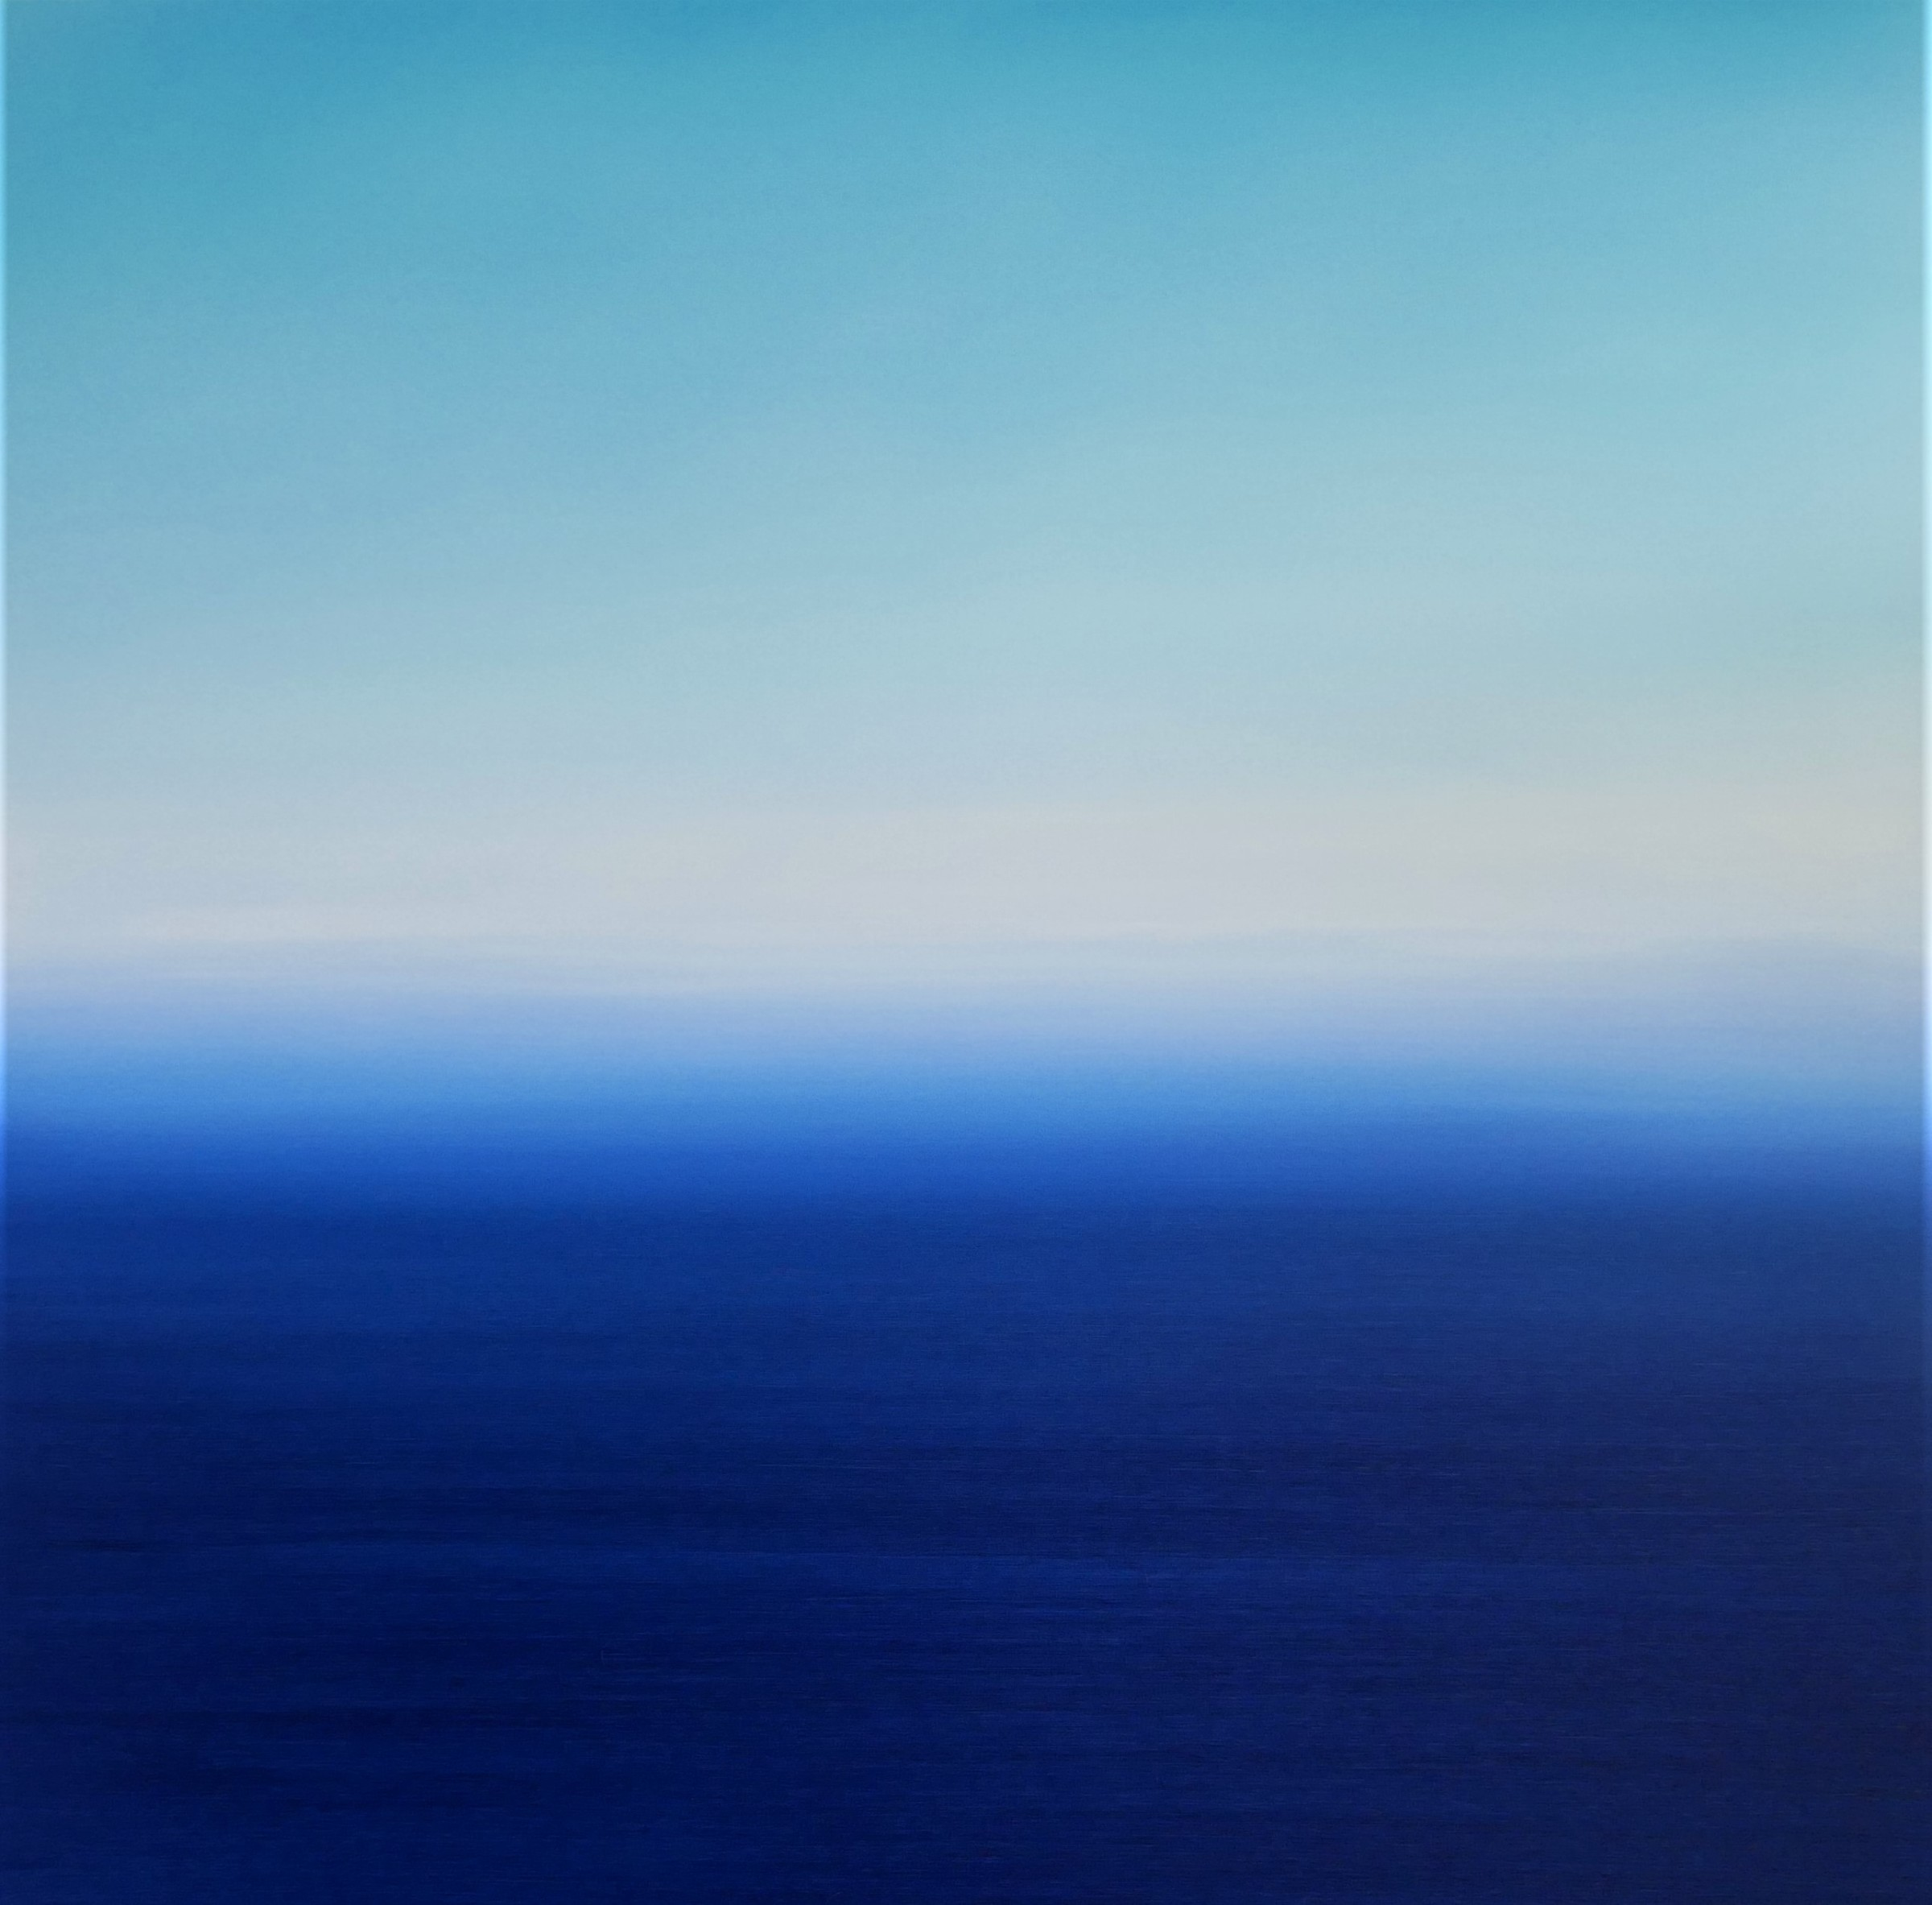 "<span class=""link fancybox-details-link""><a href=""/artists/78-martyn-perryman/works/6604-martyn-perryman-summer-still-st-ives-2-2019/"">View Detail Page</a></span><div class=""artist""><strong>Martyn Perryman</strong></div> <div class=""title""><em>Summer Still St Ives 2</em>, 2019</div> <div class=""medium"">Oil on canvas</div> <div class=""dimensions"">h. 100 x w. 100 cm </div><div class=""price"">£1,210.00</div><div class=""copyright_line"">Ownart: £121 x 10 Months, 0 % APR</div>"